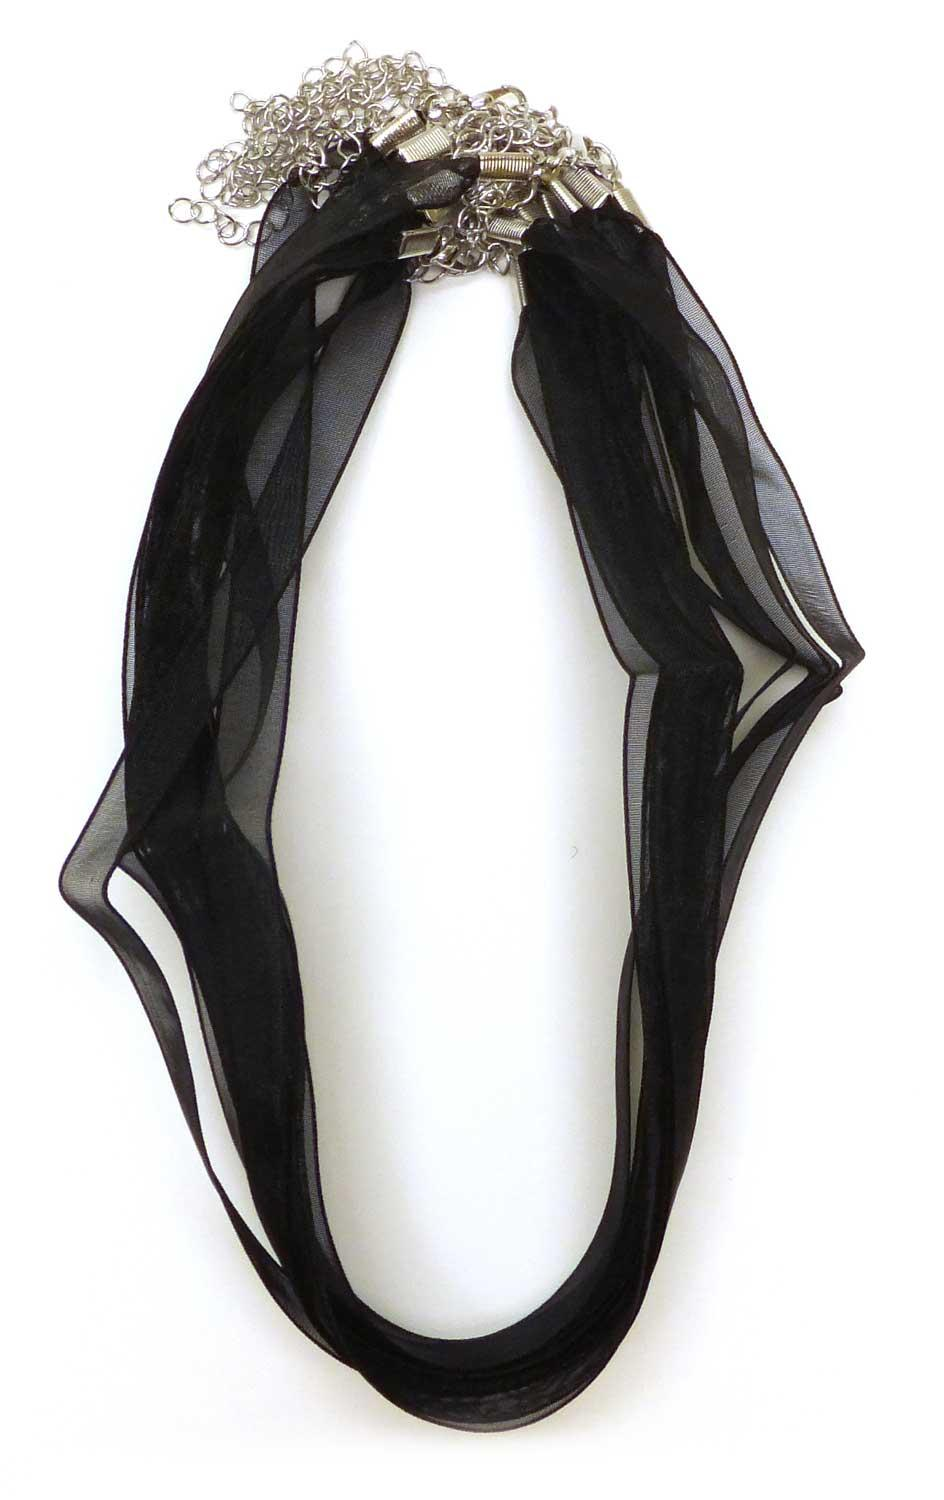 Sheer Ribbon Cord Black Necklace - 10 Pack